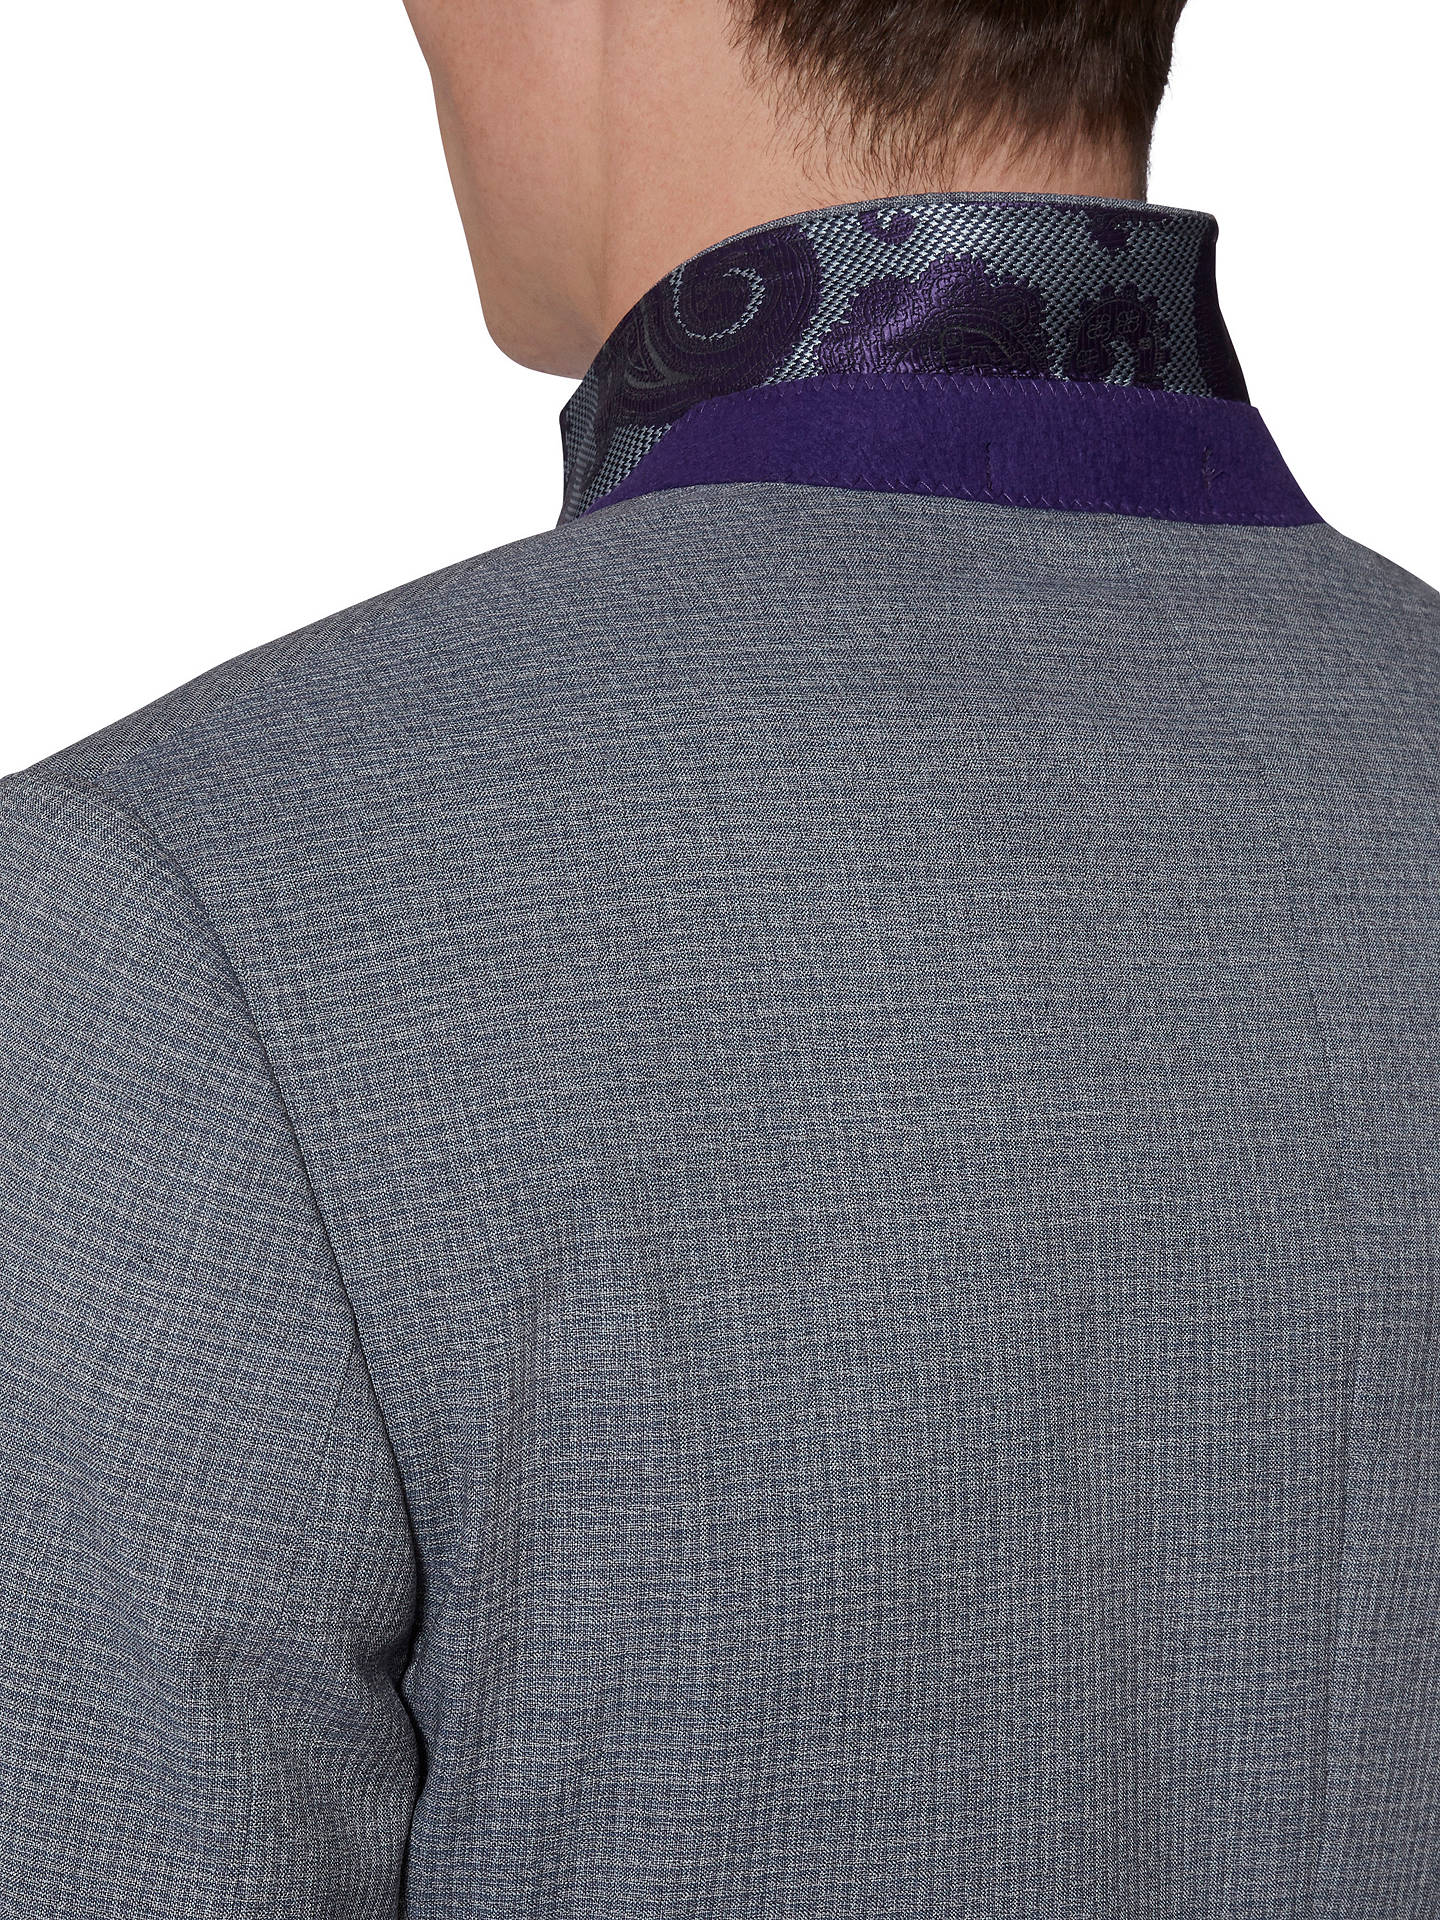 BuyTed Baker Hamiltj Textured Wool Tailored Suit Jacket, Blue/Grey, 38S Online at johnlewis.com